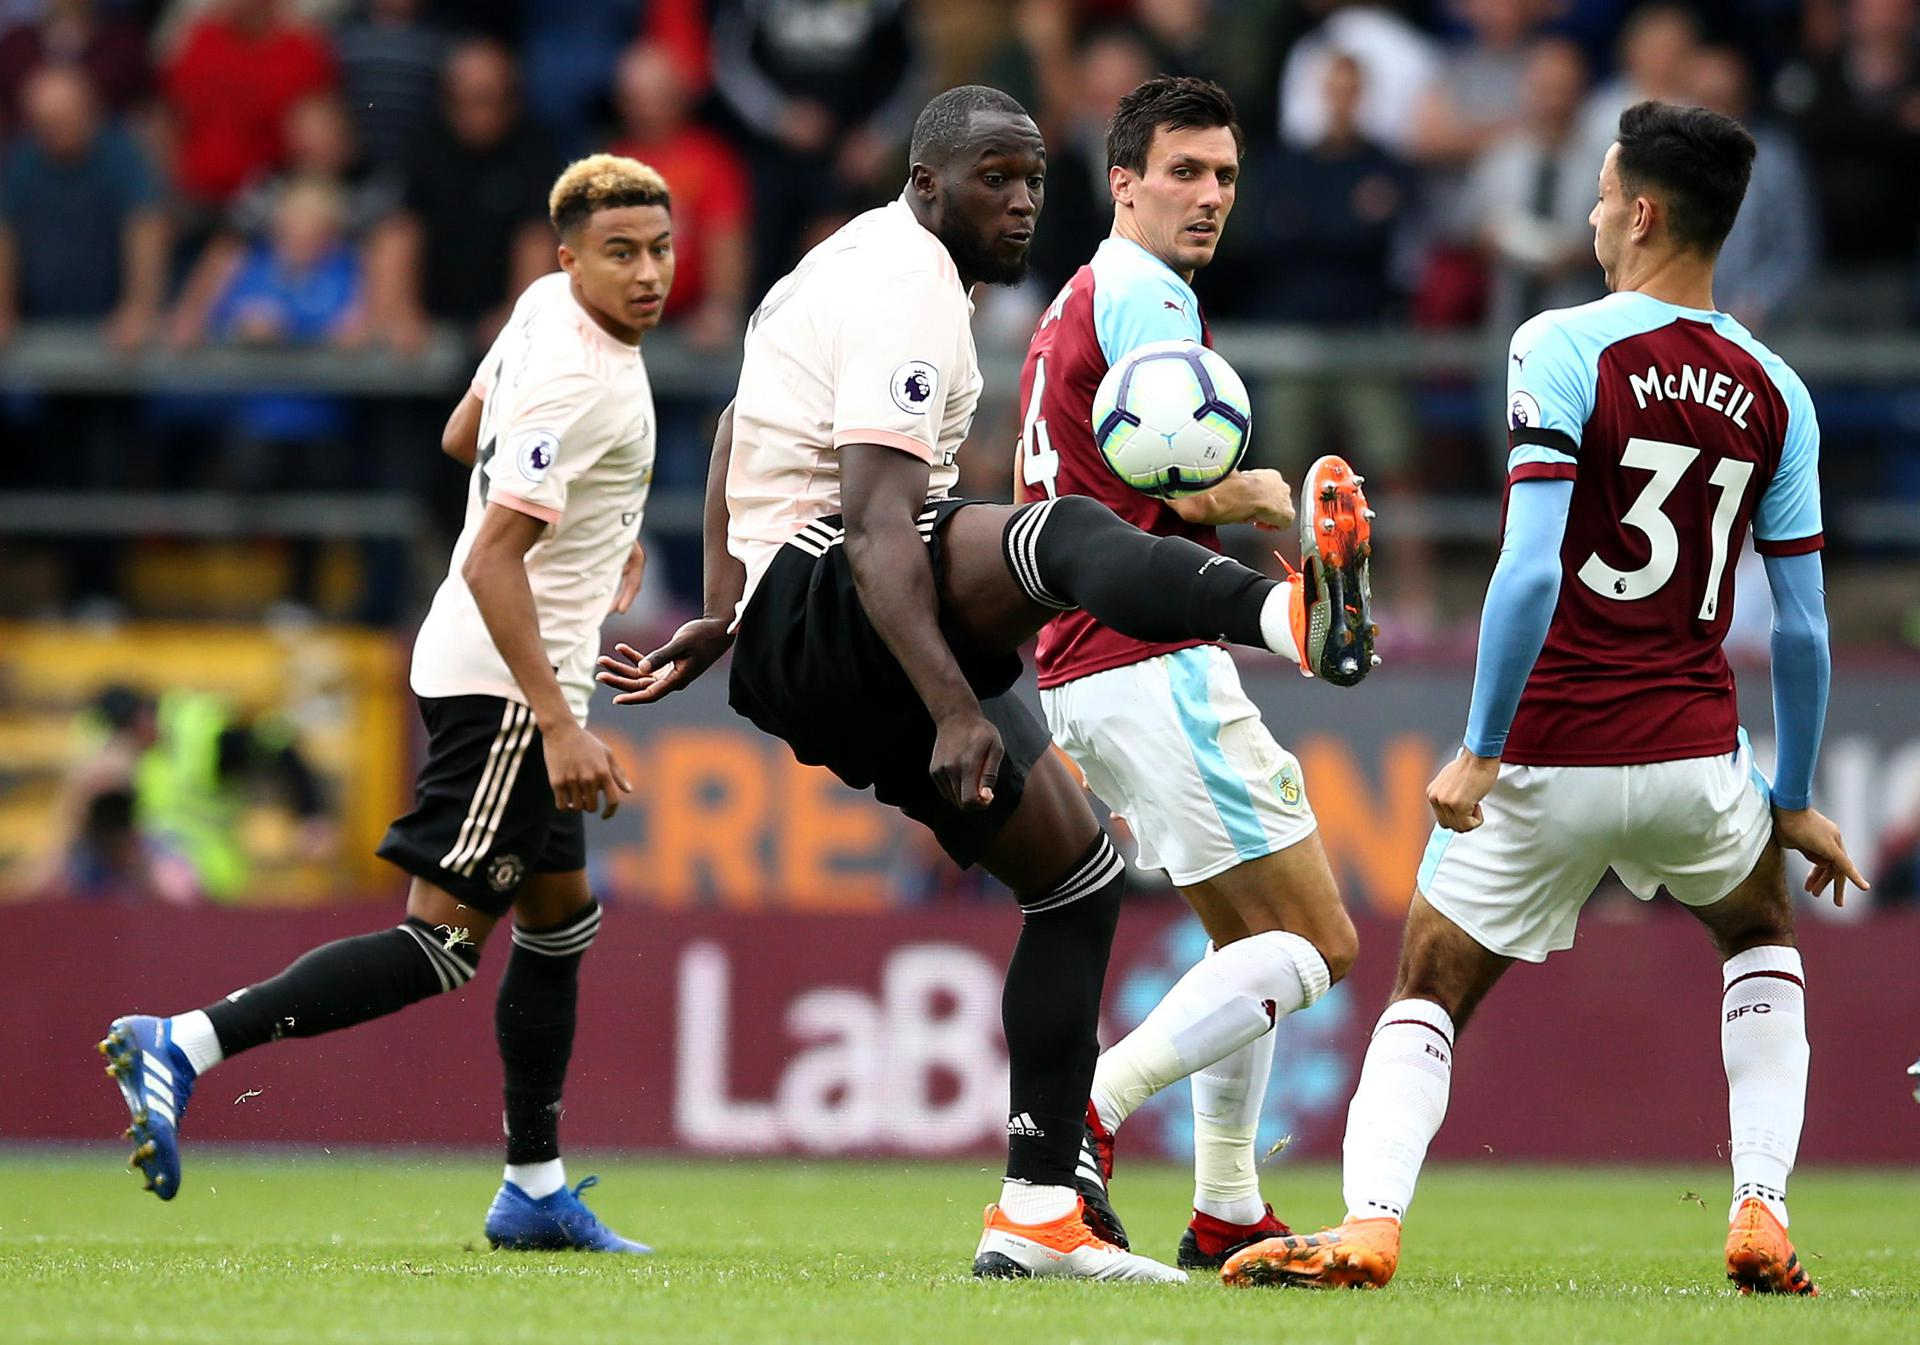 Romelu Lukaku controls the ball during Manchester United's 2-0 win against Burnley in September 2018.